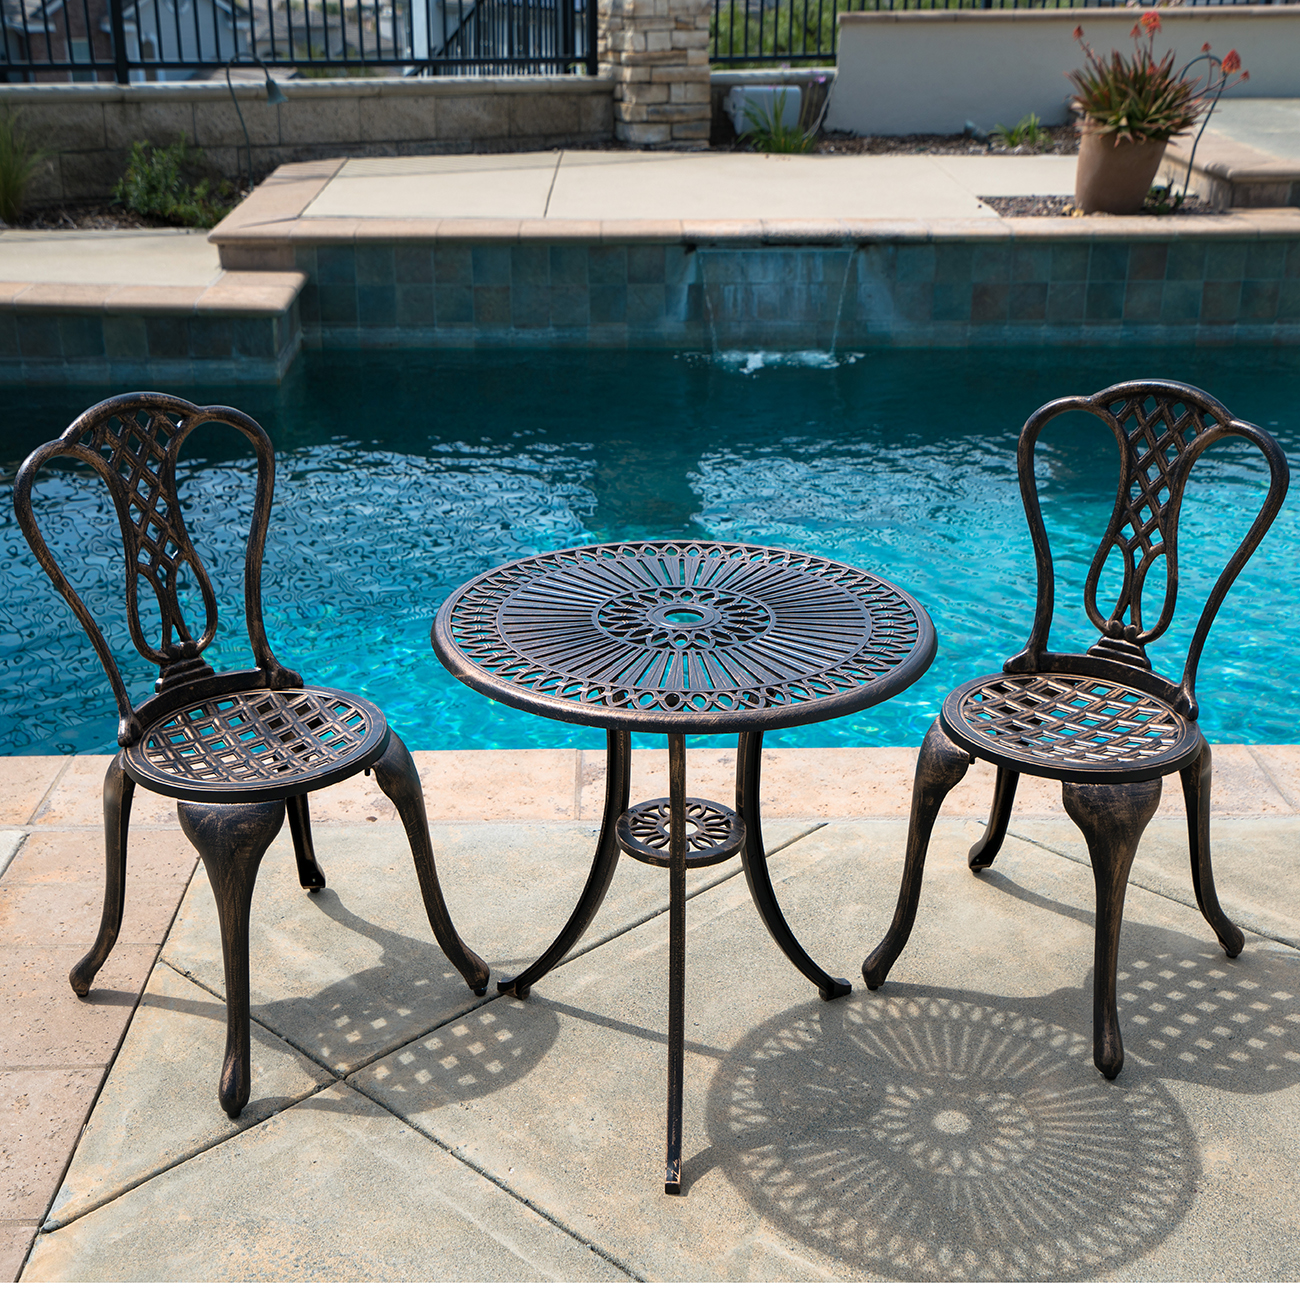 Vintage Garden Table And Chairs Set: 3PCS Outdoor Bistro Patio Cast Aluminum Table And Chair